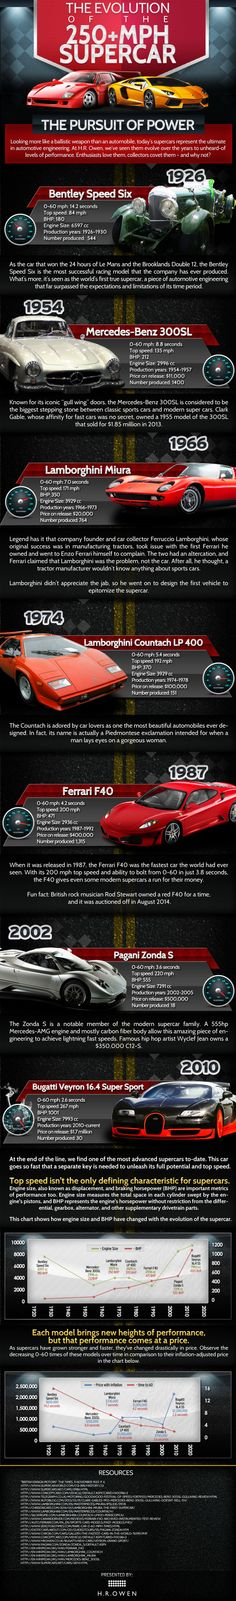 The Evolution of the MPH Supercar Infographic from H. Find out how the supercars we know and love today came to be in this graphic. Reliable Cars, Learn Something New Everyday, Charts And Graphs, Data Visualization, Fast Cars, Exotic Cars, Night Life, Cars For Sale, Evolution